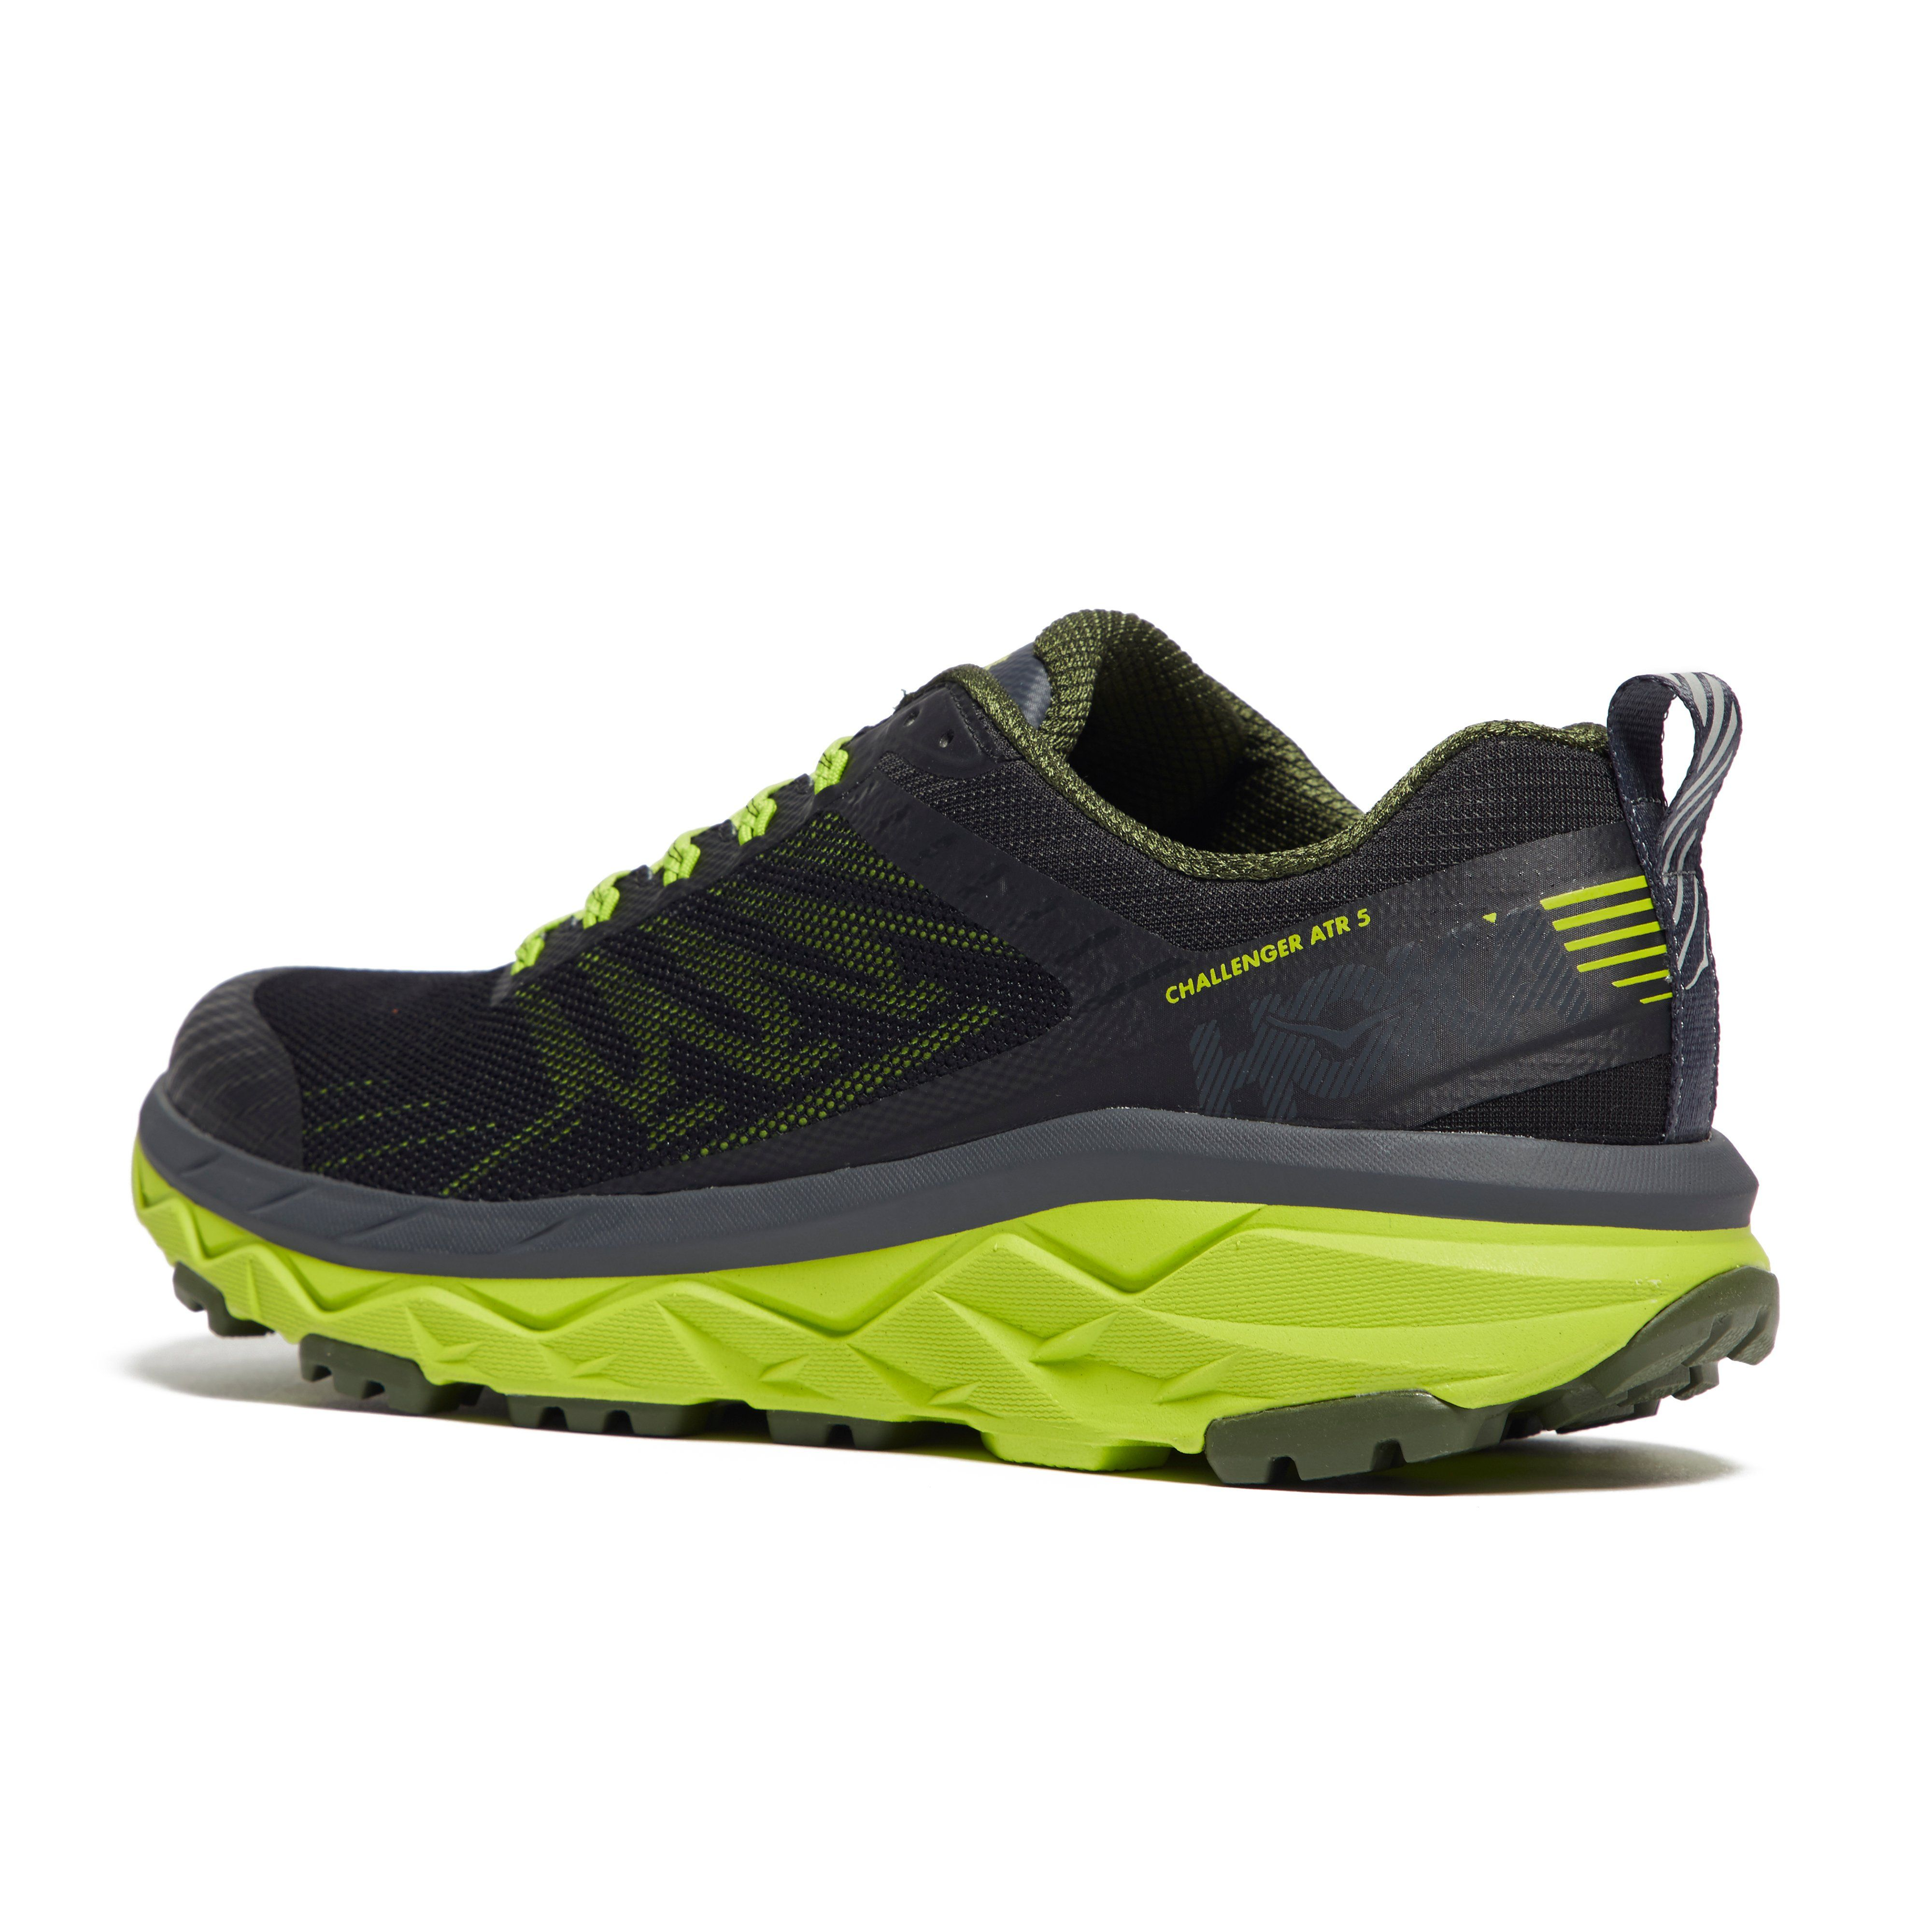 Hoka One One Challenger ATR 5 Men's Trail Running Shoes